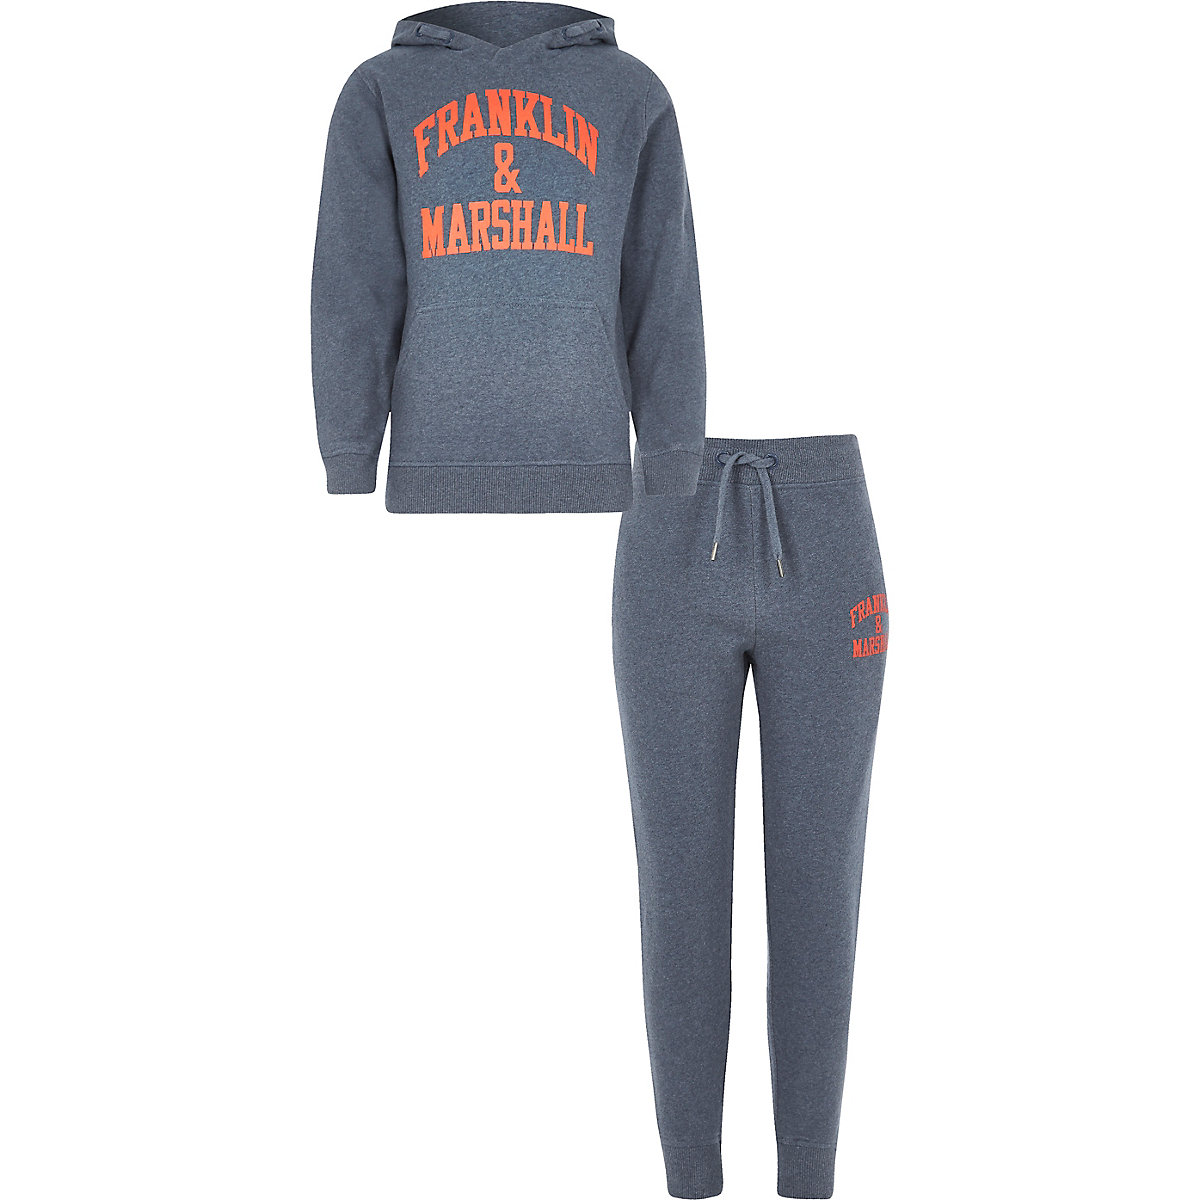 Franklin & Marshall – Outfit mit Jogginghose